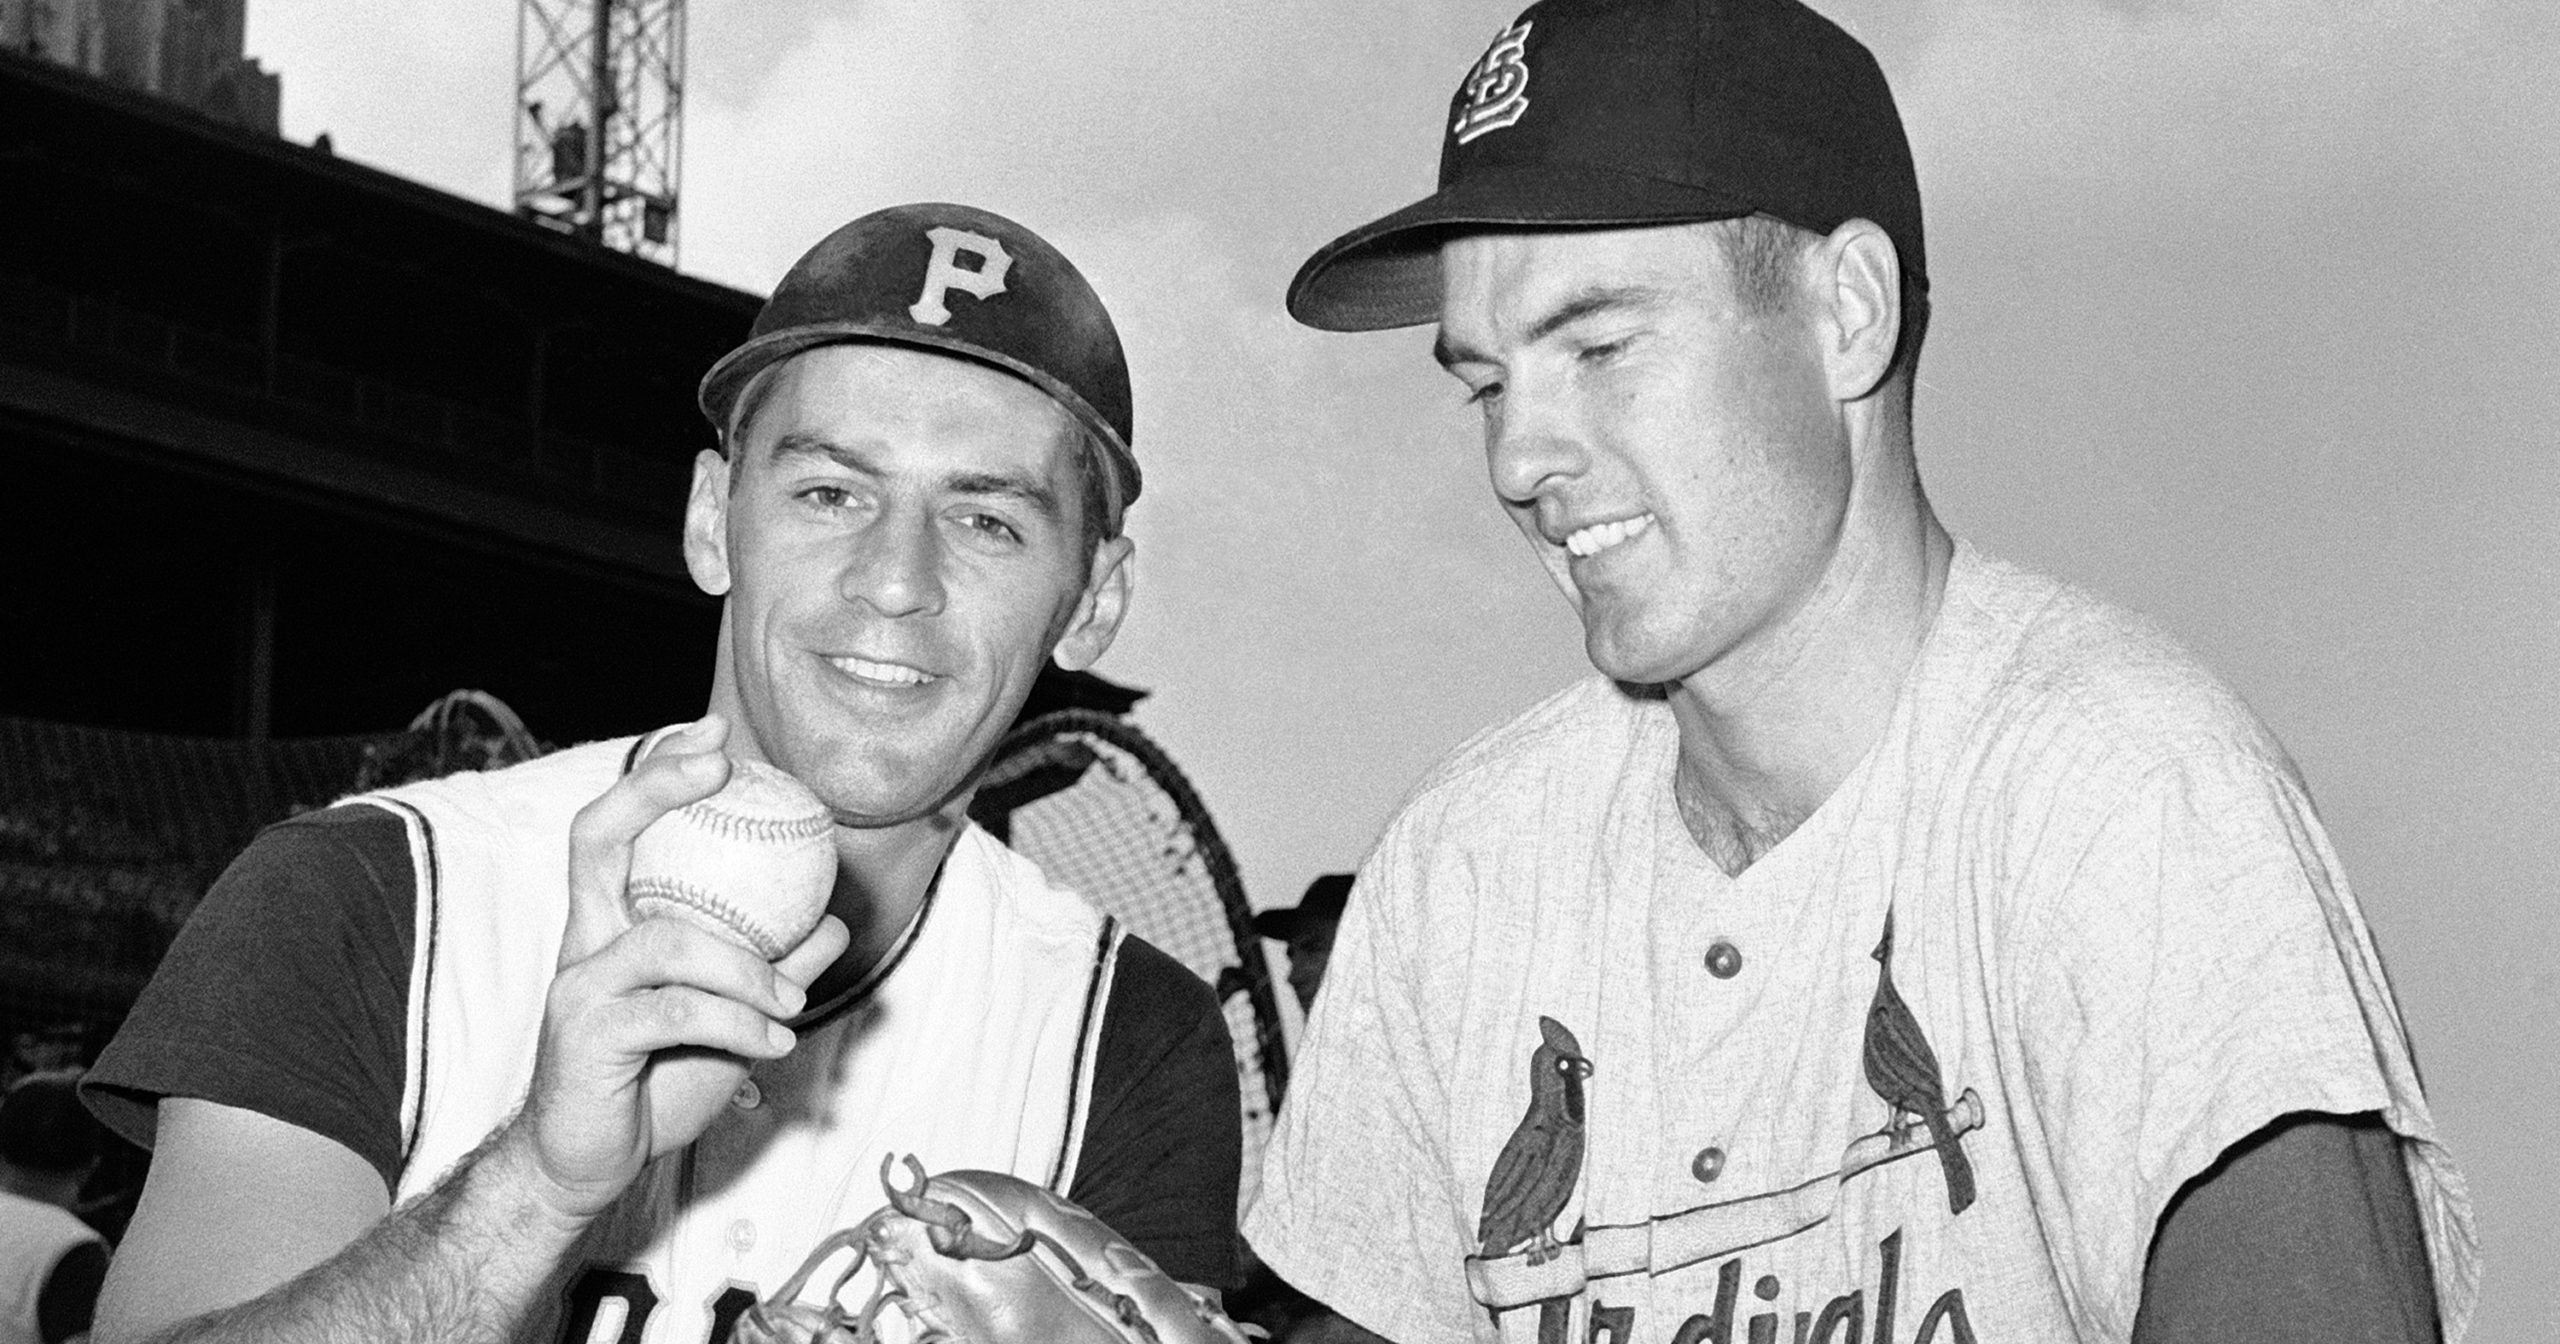 Shortstop Dick Groat, left, of the Pittsburgh Pirates, and pitcher Lindy McDaniel of the St. Louis Cardinals talk at Forbes Field in Pittsburgh on Aug. 11, 1960.